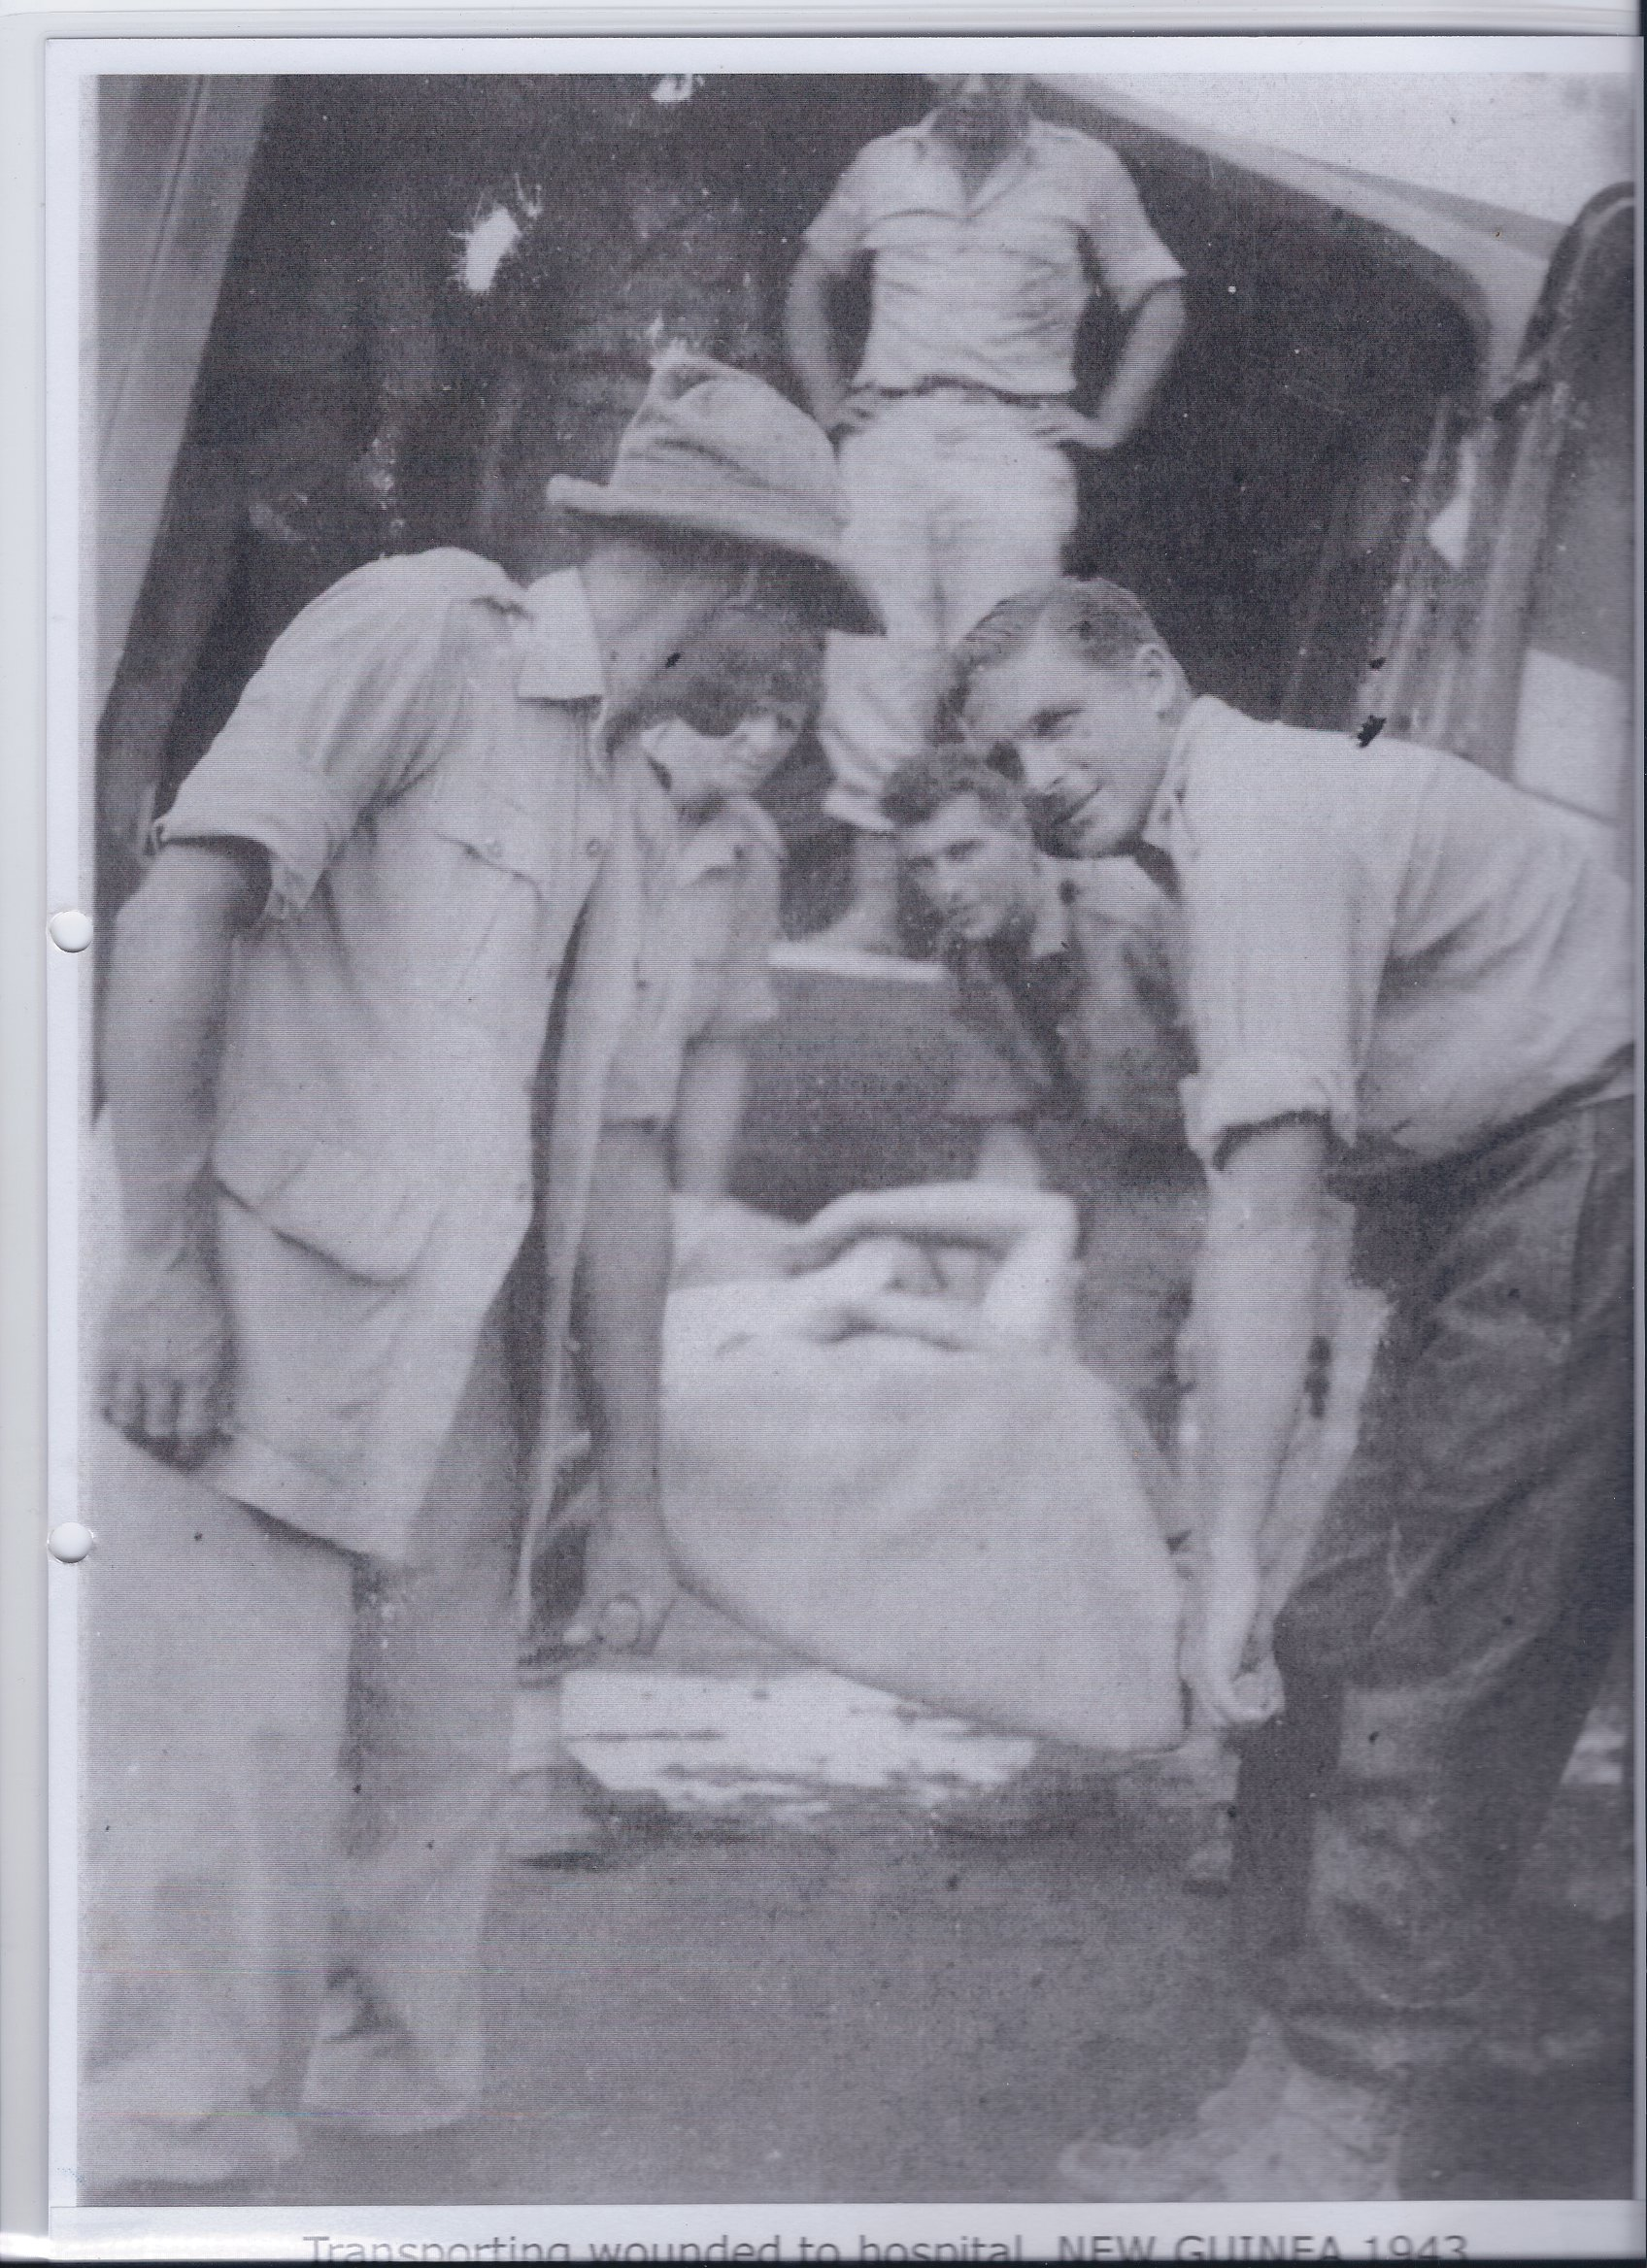 Transporting wounded to hospital NEW GUINEA 1943